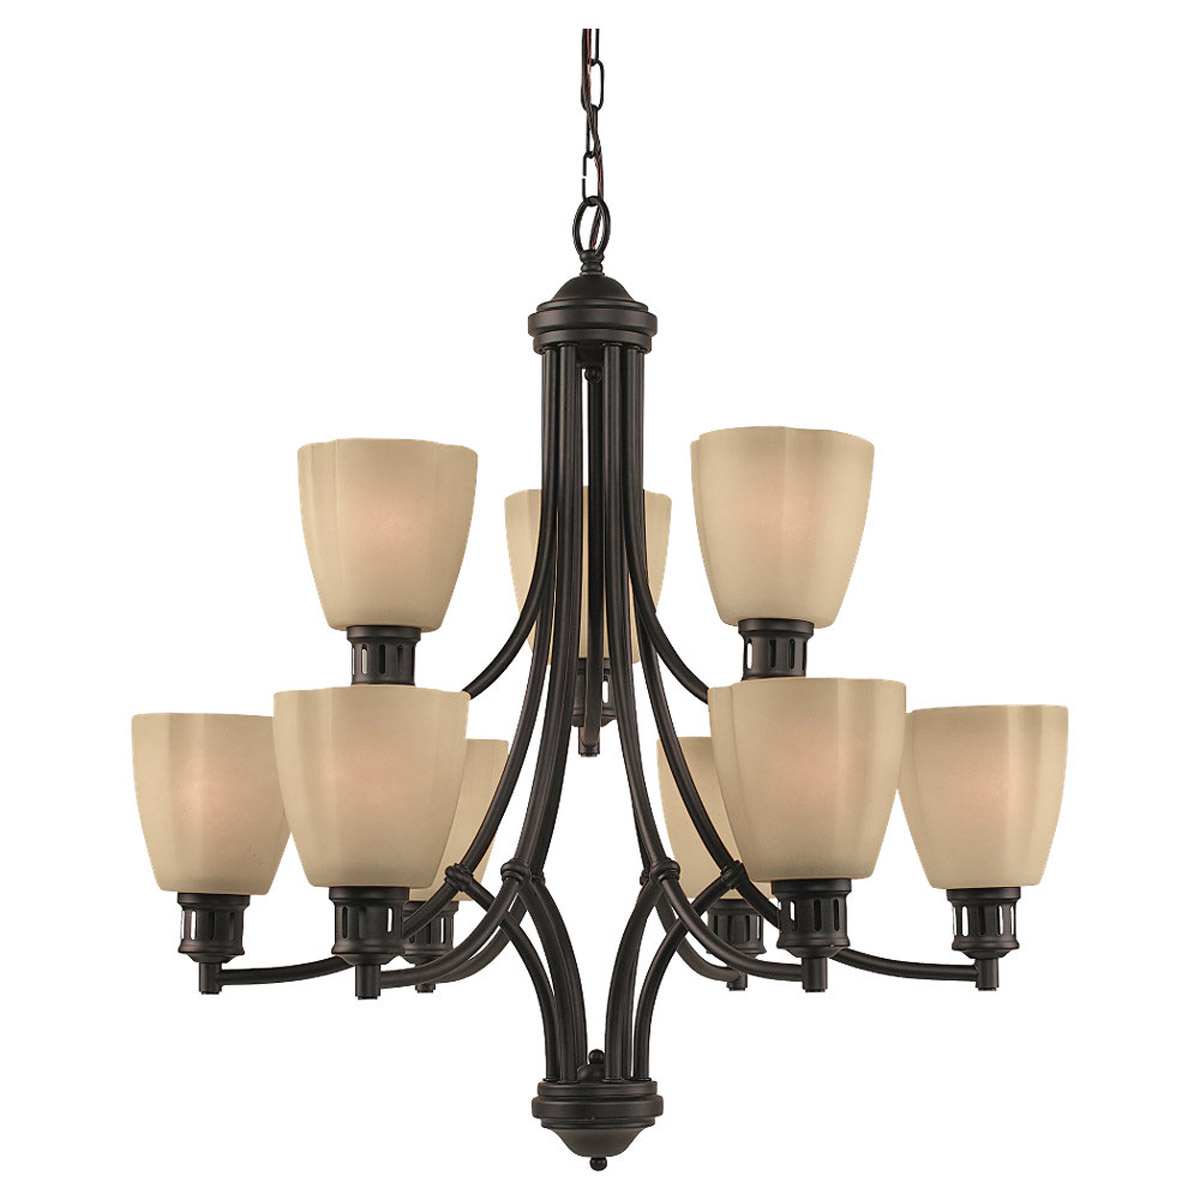 Sea Gull Lighting Century 9 Light Chandelier in Heirloom Bronze 31477-782